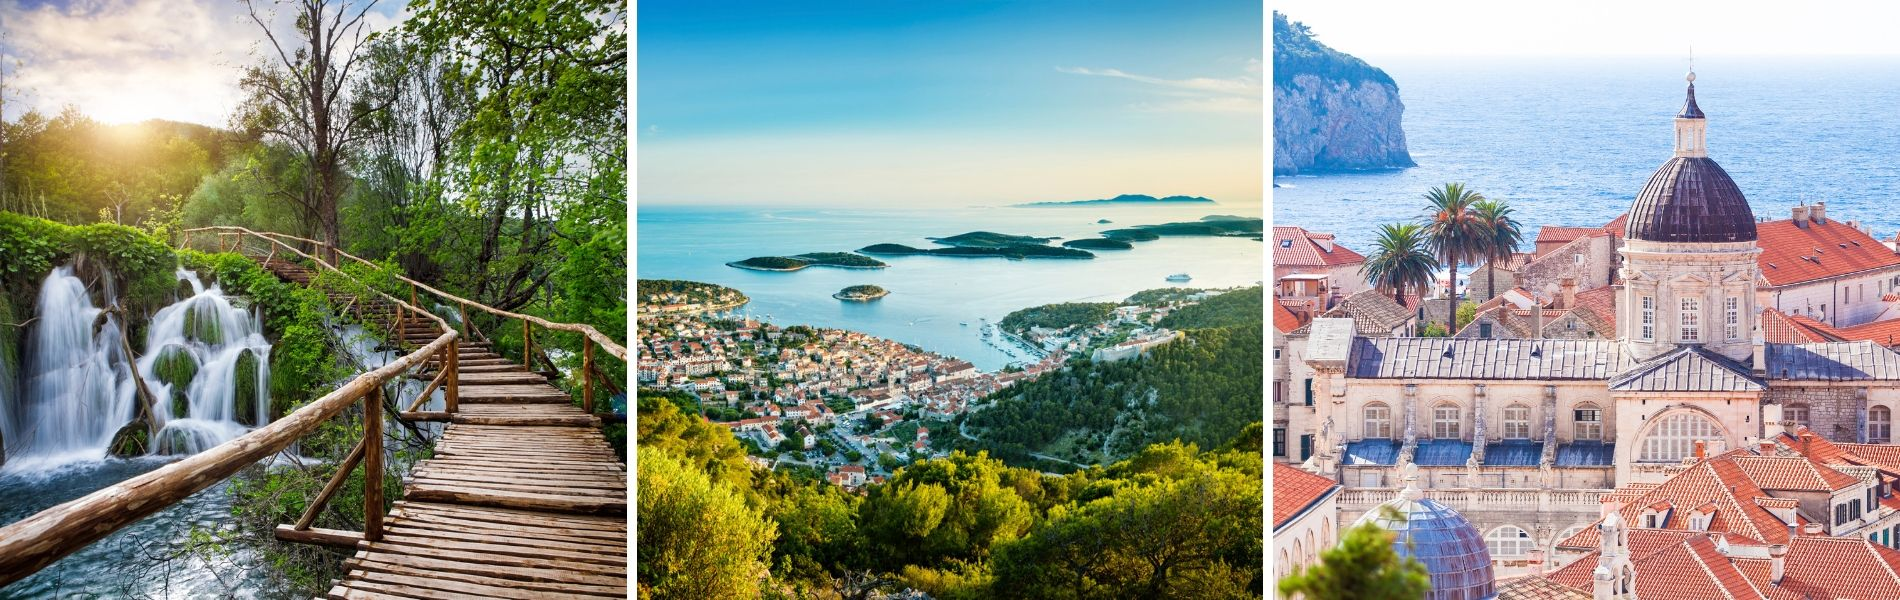 Unforgettable Croatia, Scholarship Competition